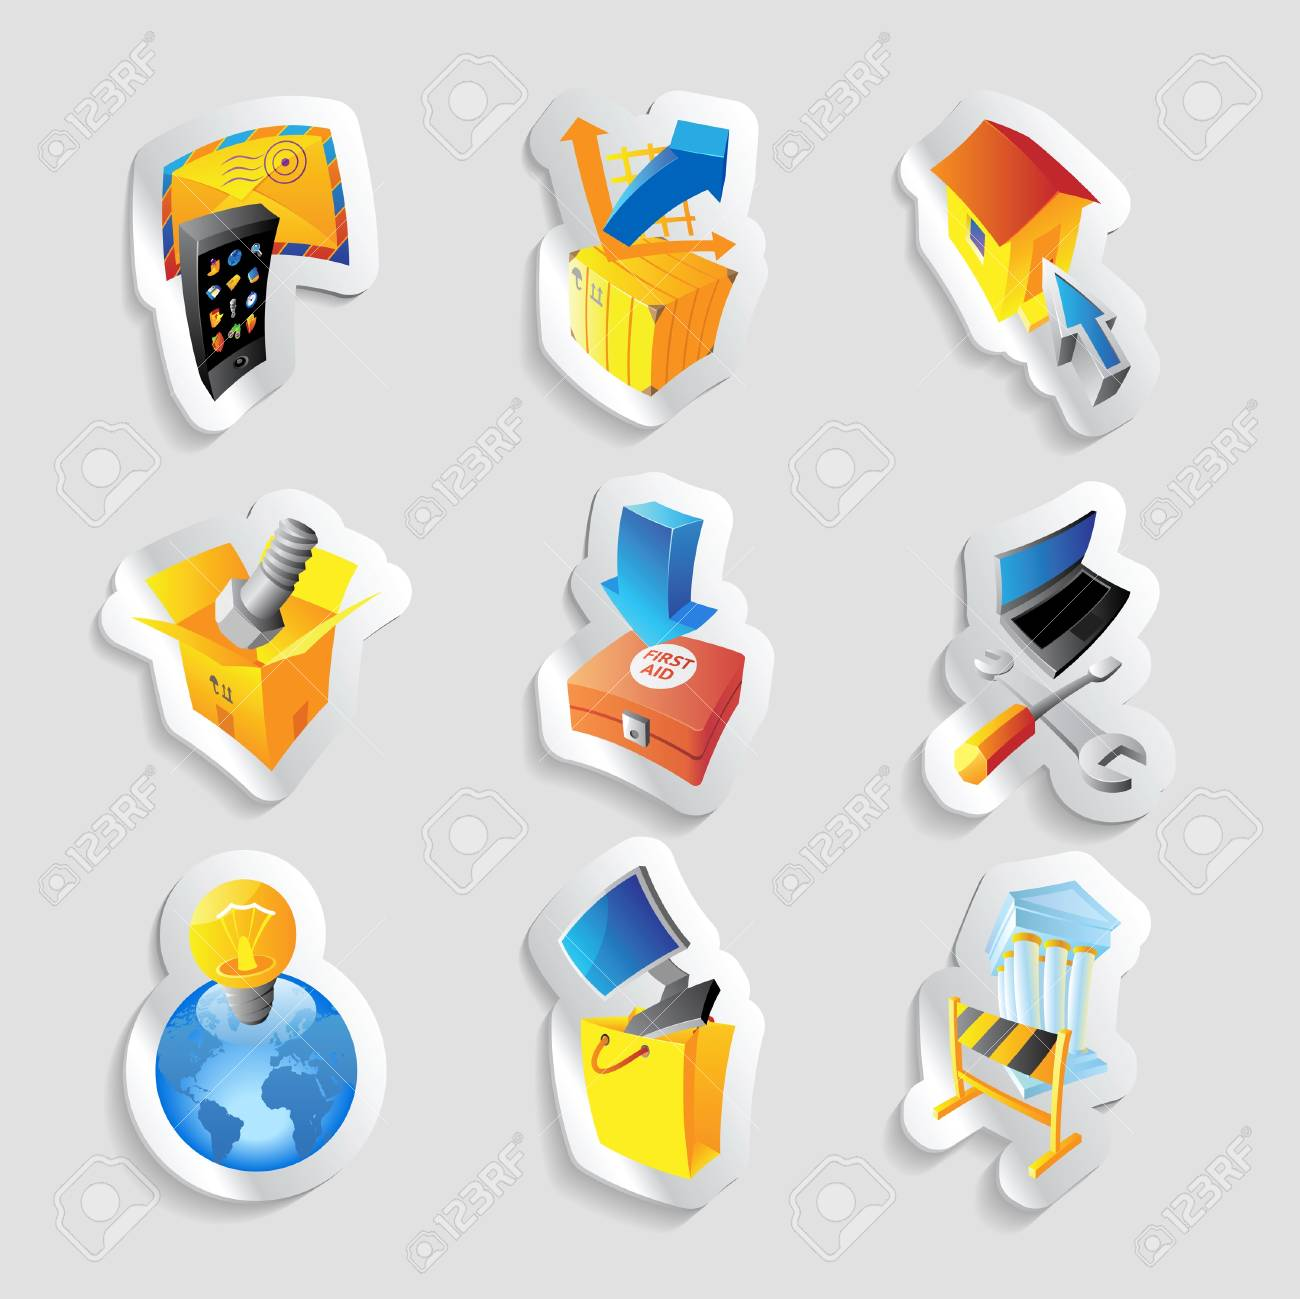 Icons for industry. Stock Vector - 15585085